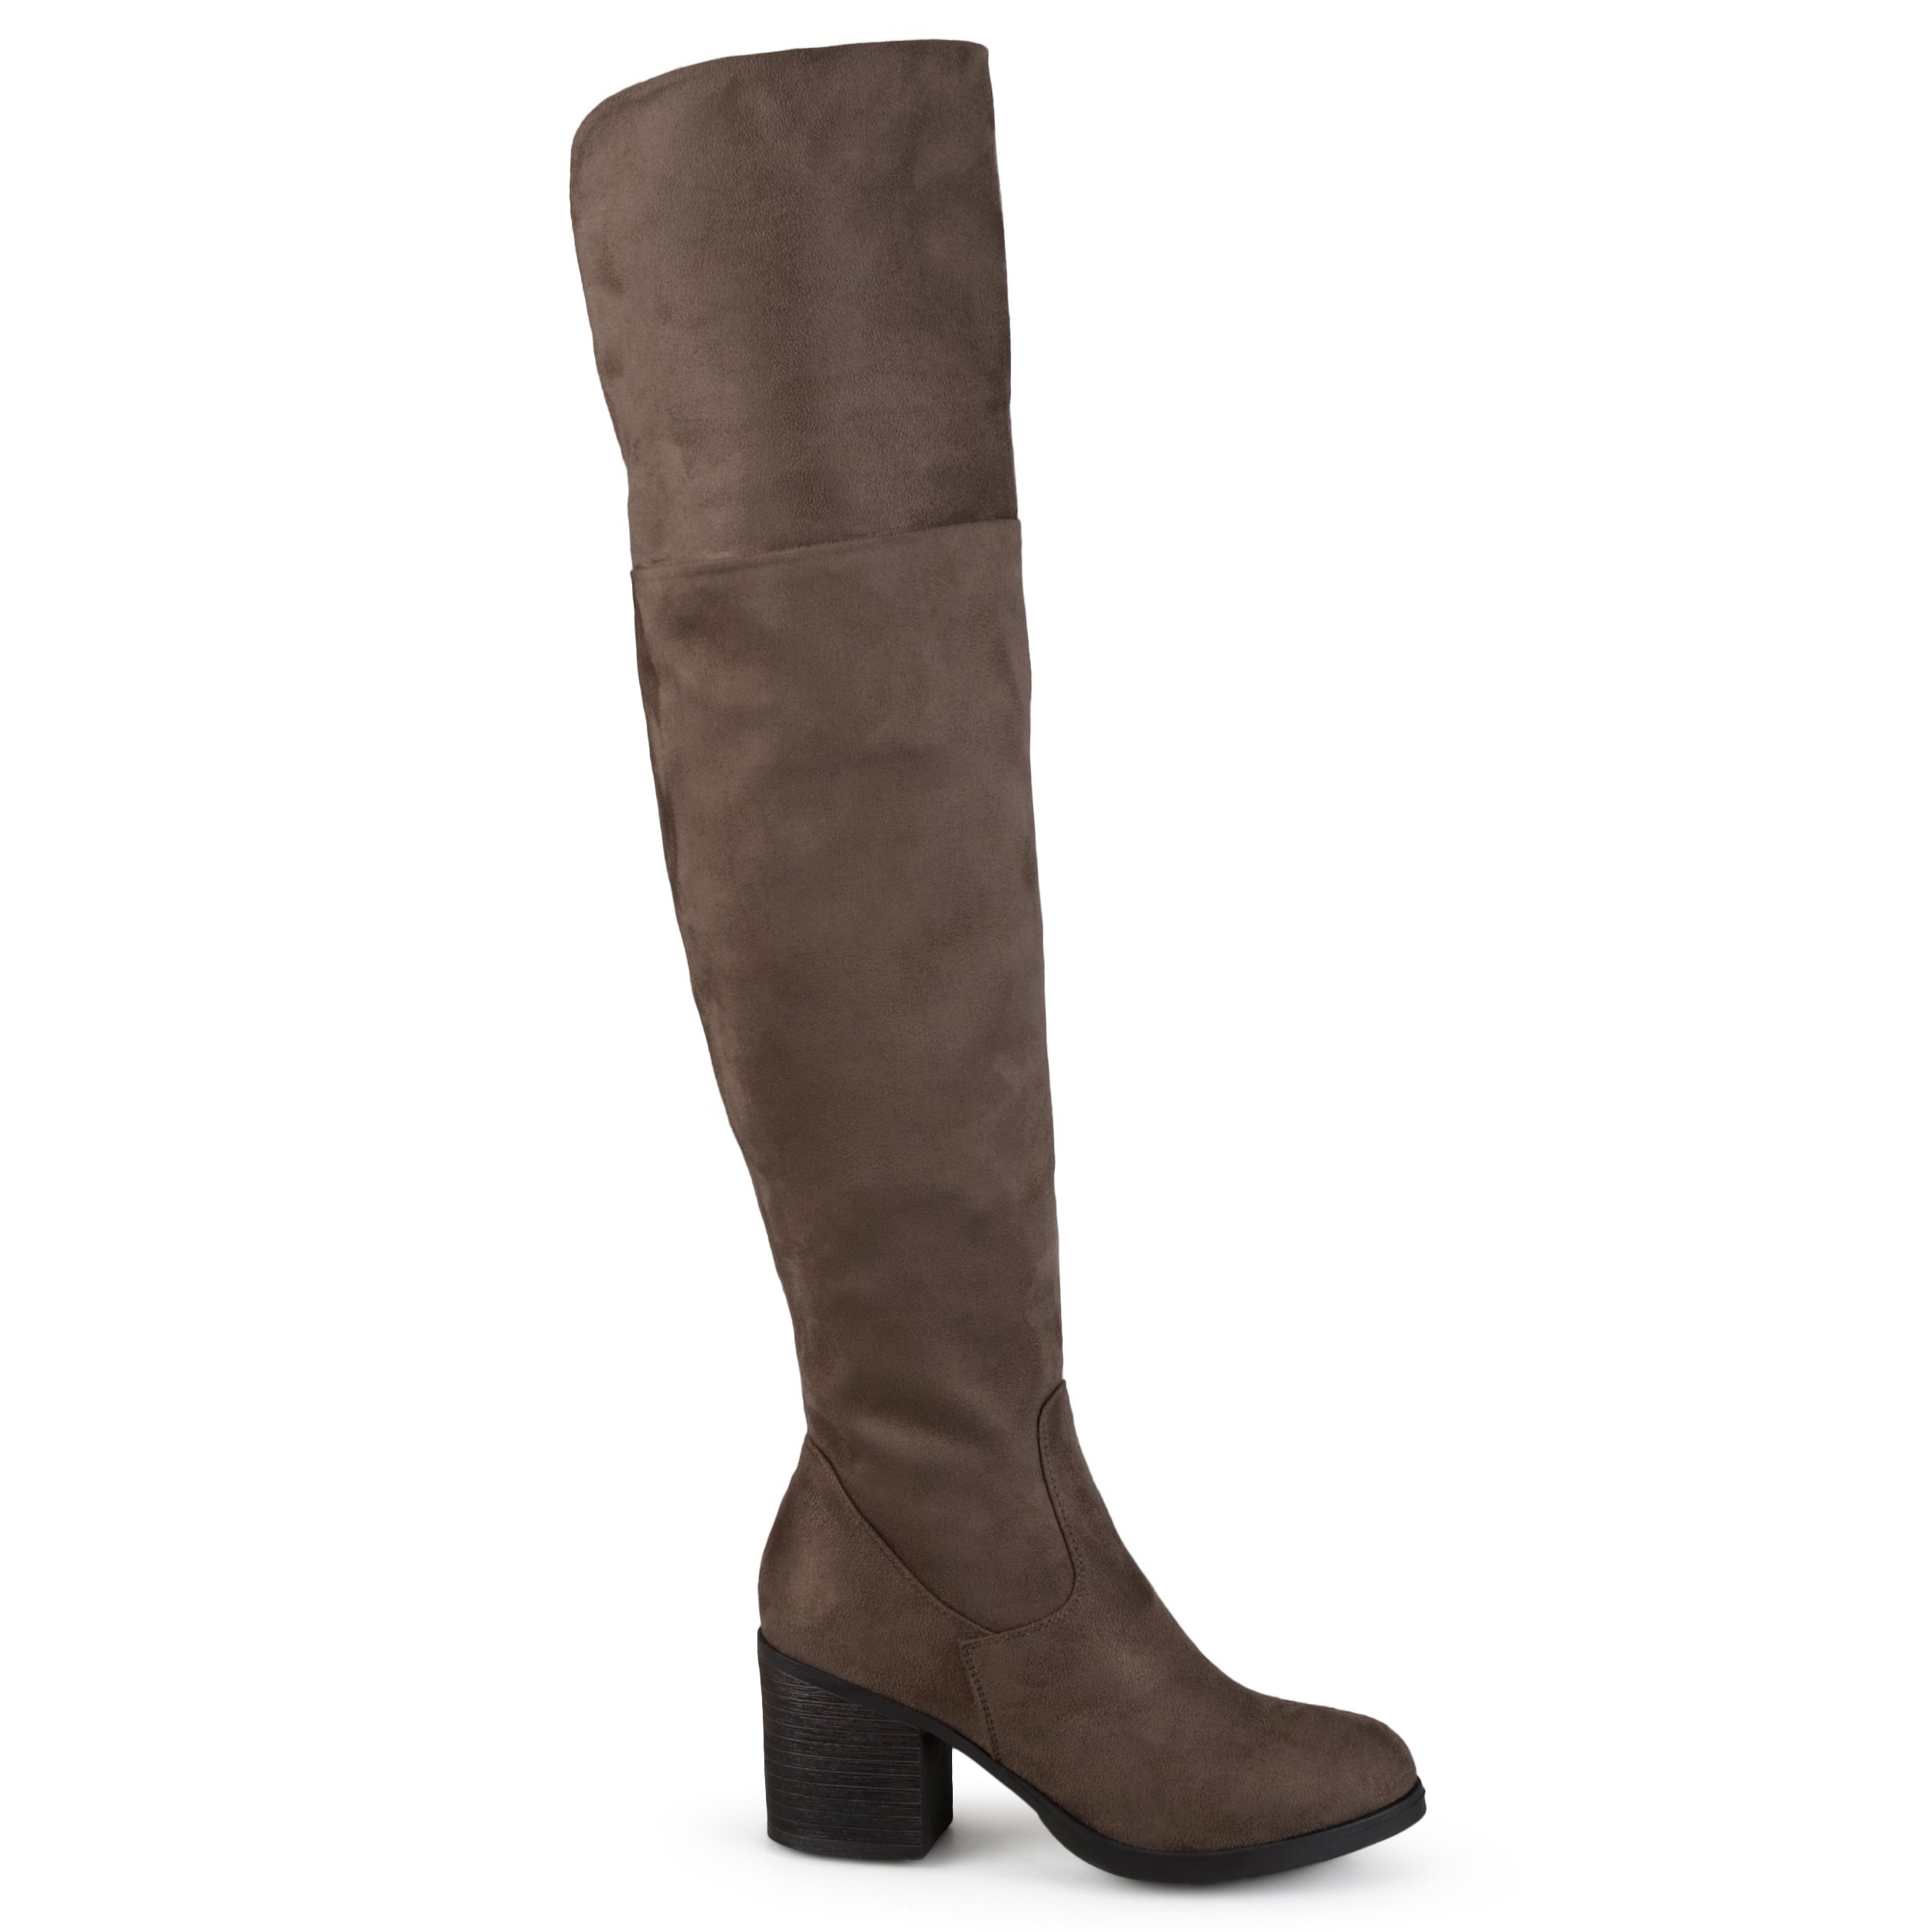 Brinley Co Women's Sall Over The Knee Boot, Taupe, 8 Regular US